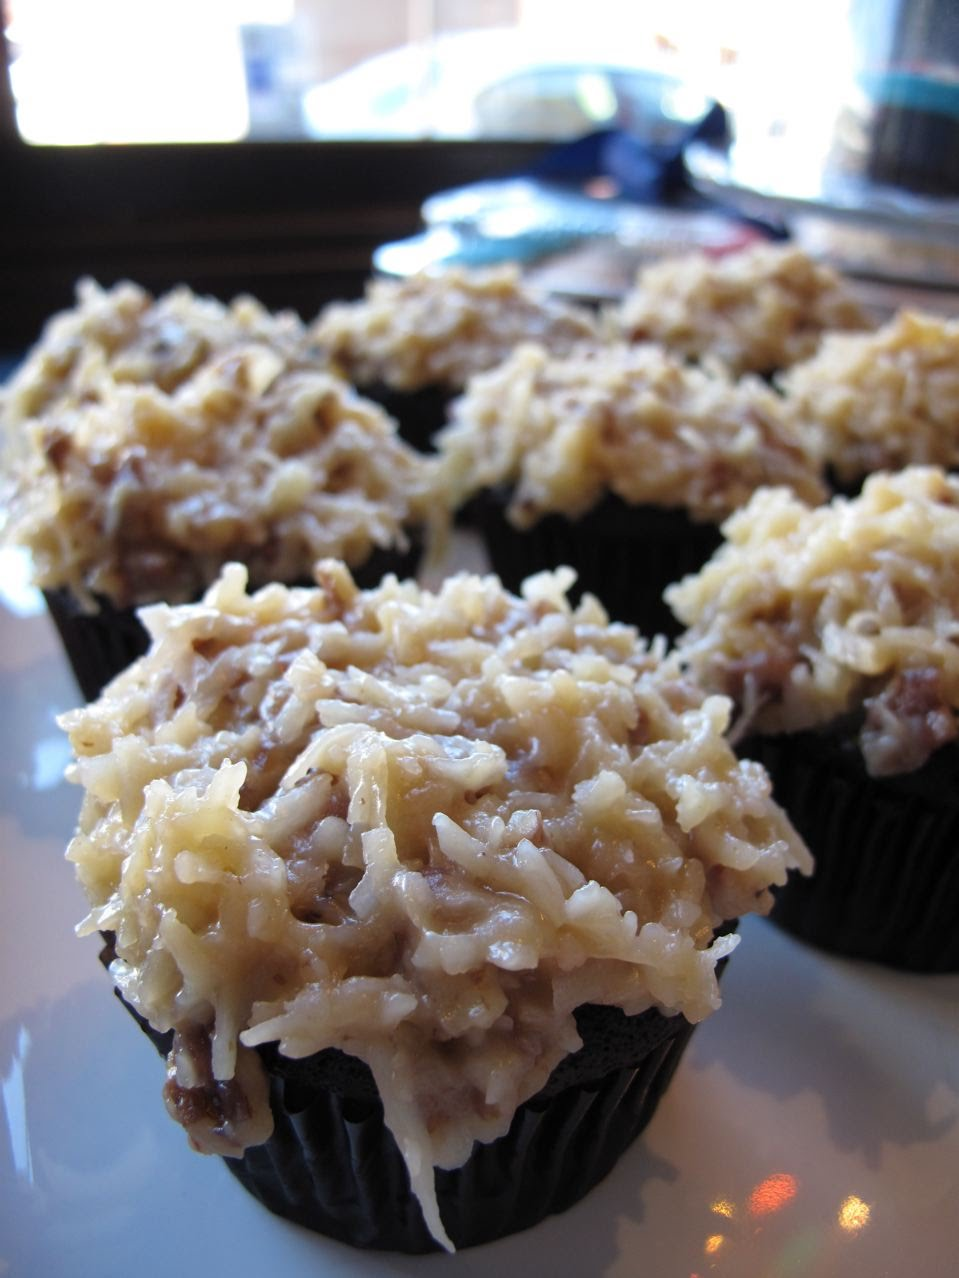 ... german chocolate cupcakes (pictured), icebox cupcakes, boston cream